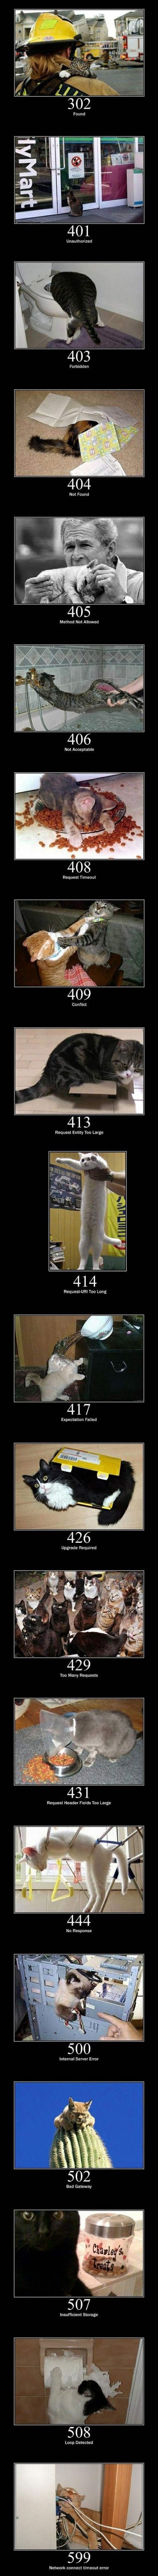 Internet errors as depicted by cats